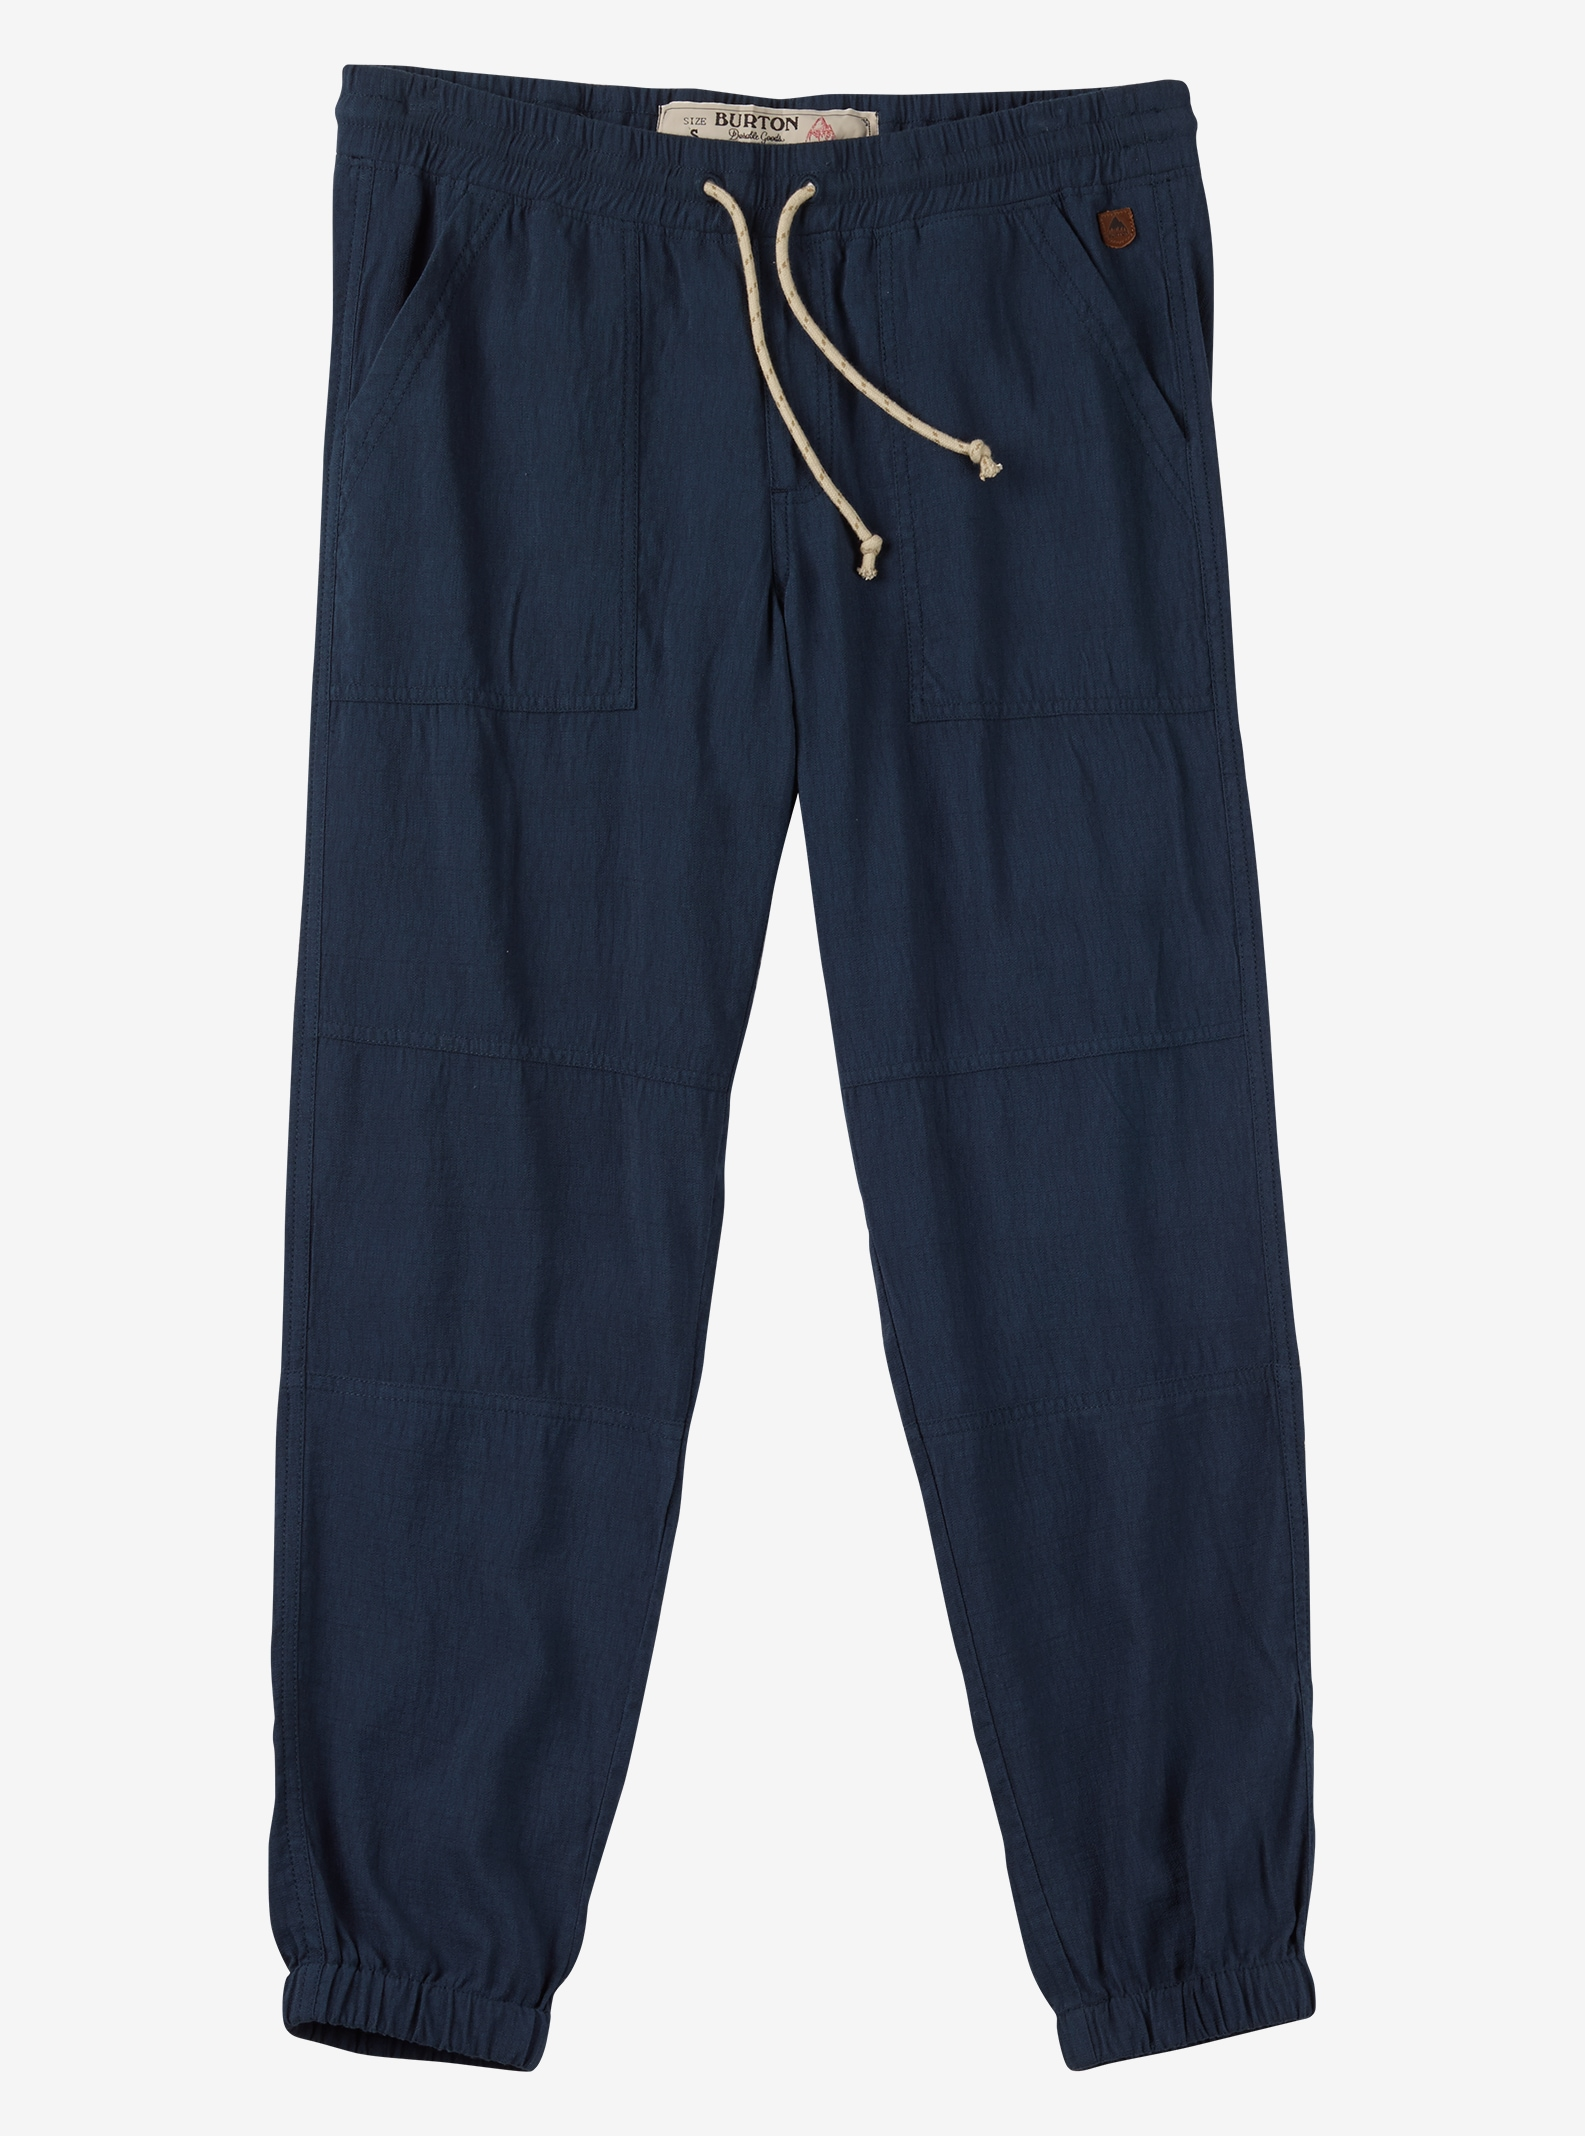 Burton Joy Pant shown in Mood Indigo